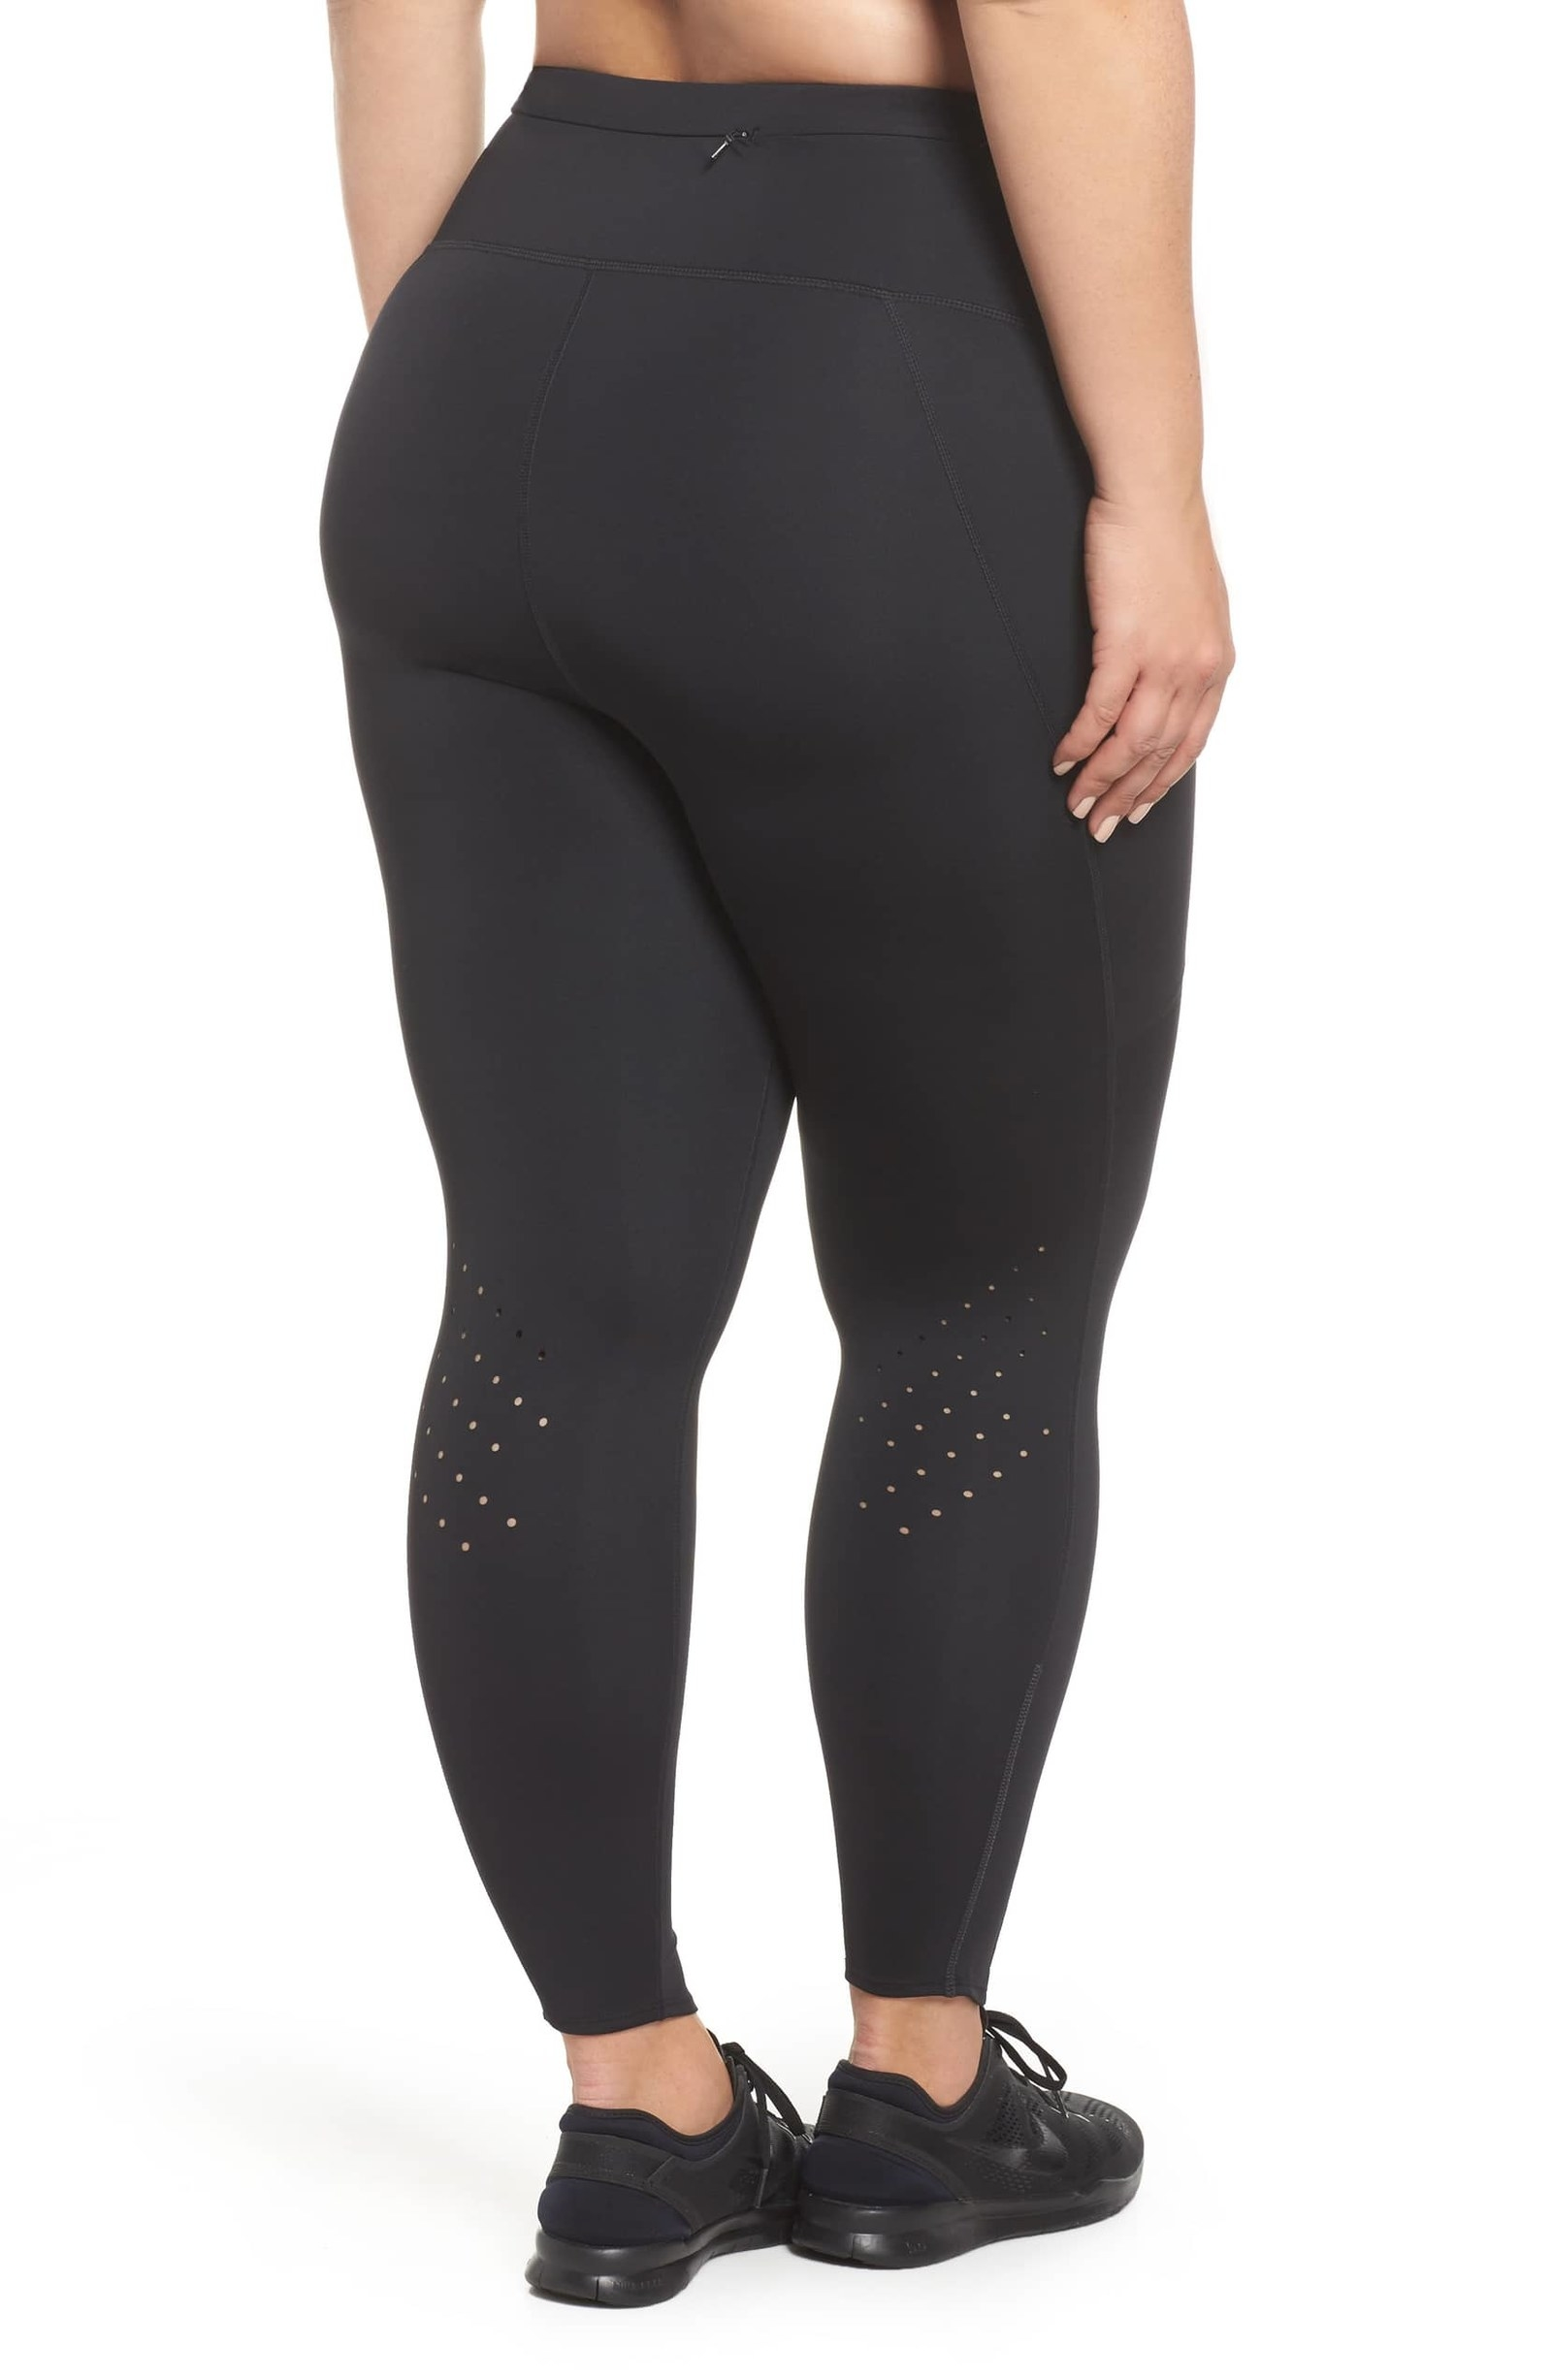 f616c03a5e3 High-waisted leggings designed with a moisture-wicking material and  reflective details that ll keep you safe whilst running at night.